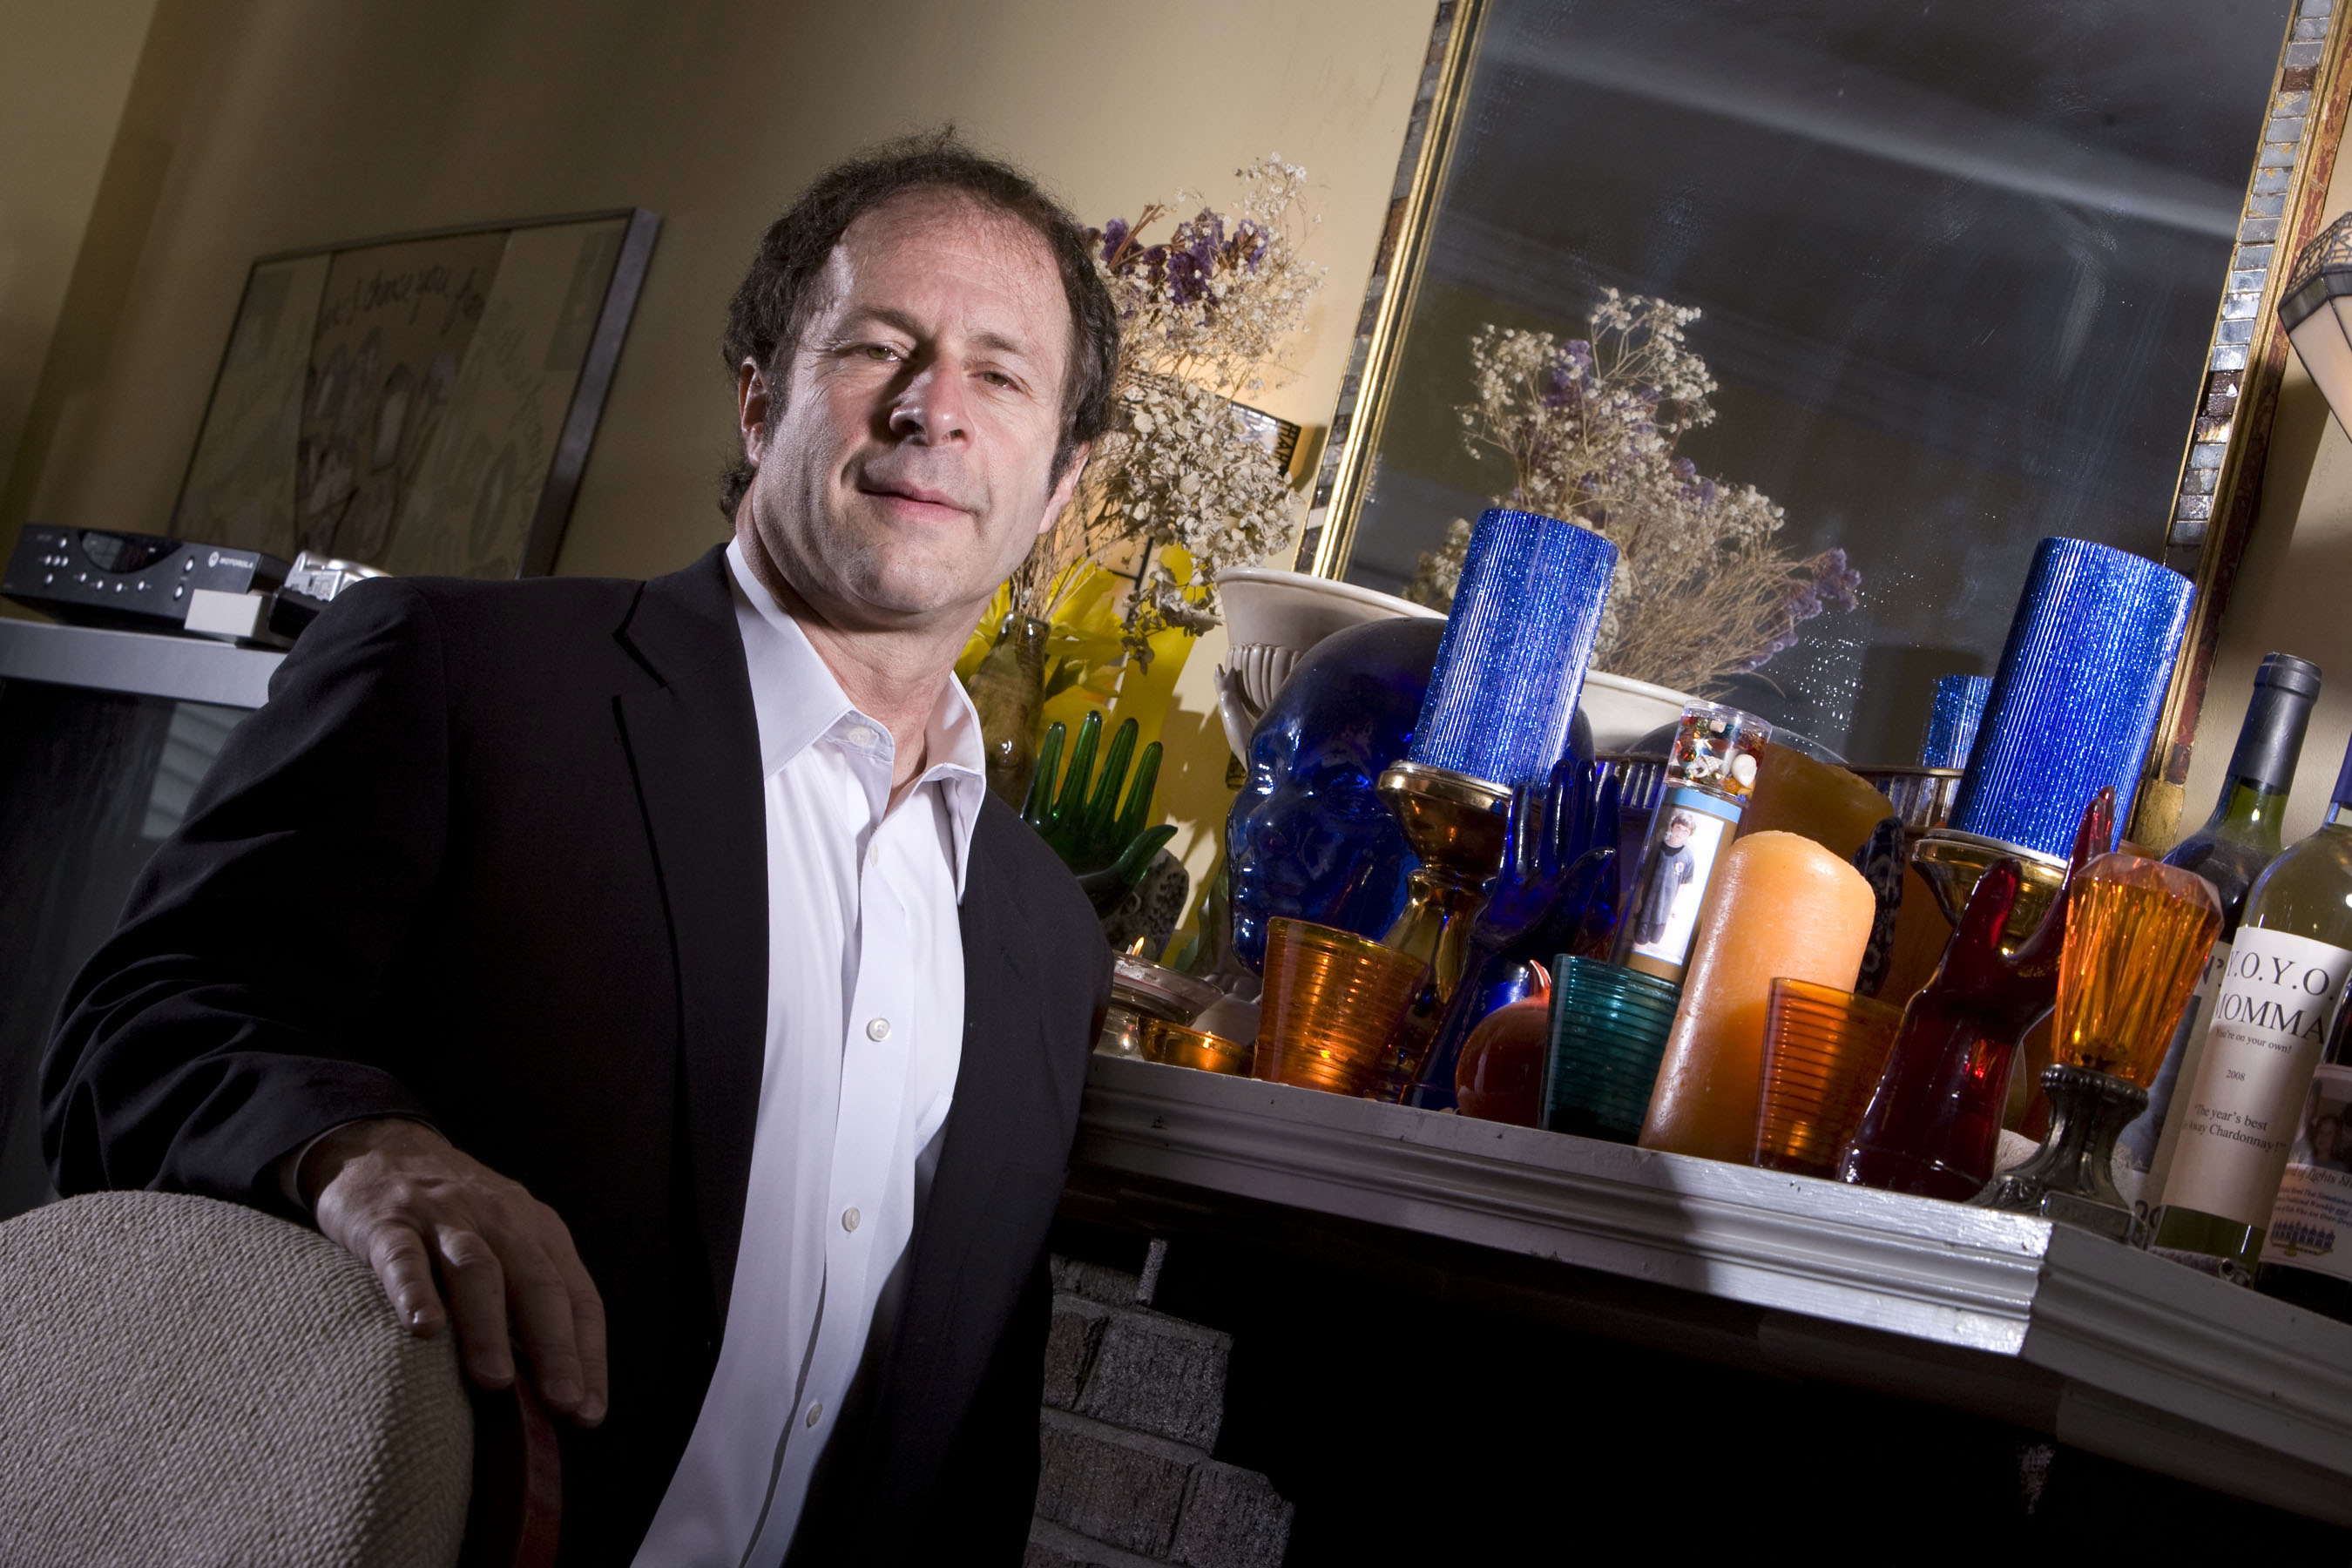 Rick Doblin, president and founder of the Multidisciplinary Association for Psychedelic Studies, poses for a portrait at his home in Belmont, Massachusetts, U.S., on Friday, April 11, 2008. Four decades after the Grateful Dead and Timothy Leary made acid trips a counter-cultural rite of passage, Rick Doblin is trying to shake the drug's hippie image and reclaim its use as a medicine.